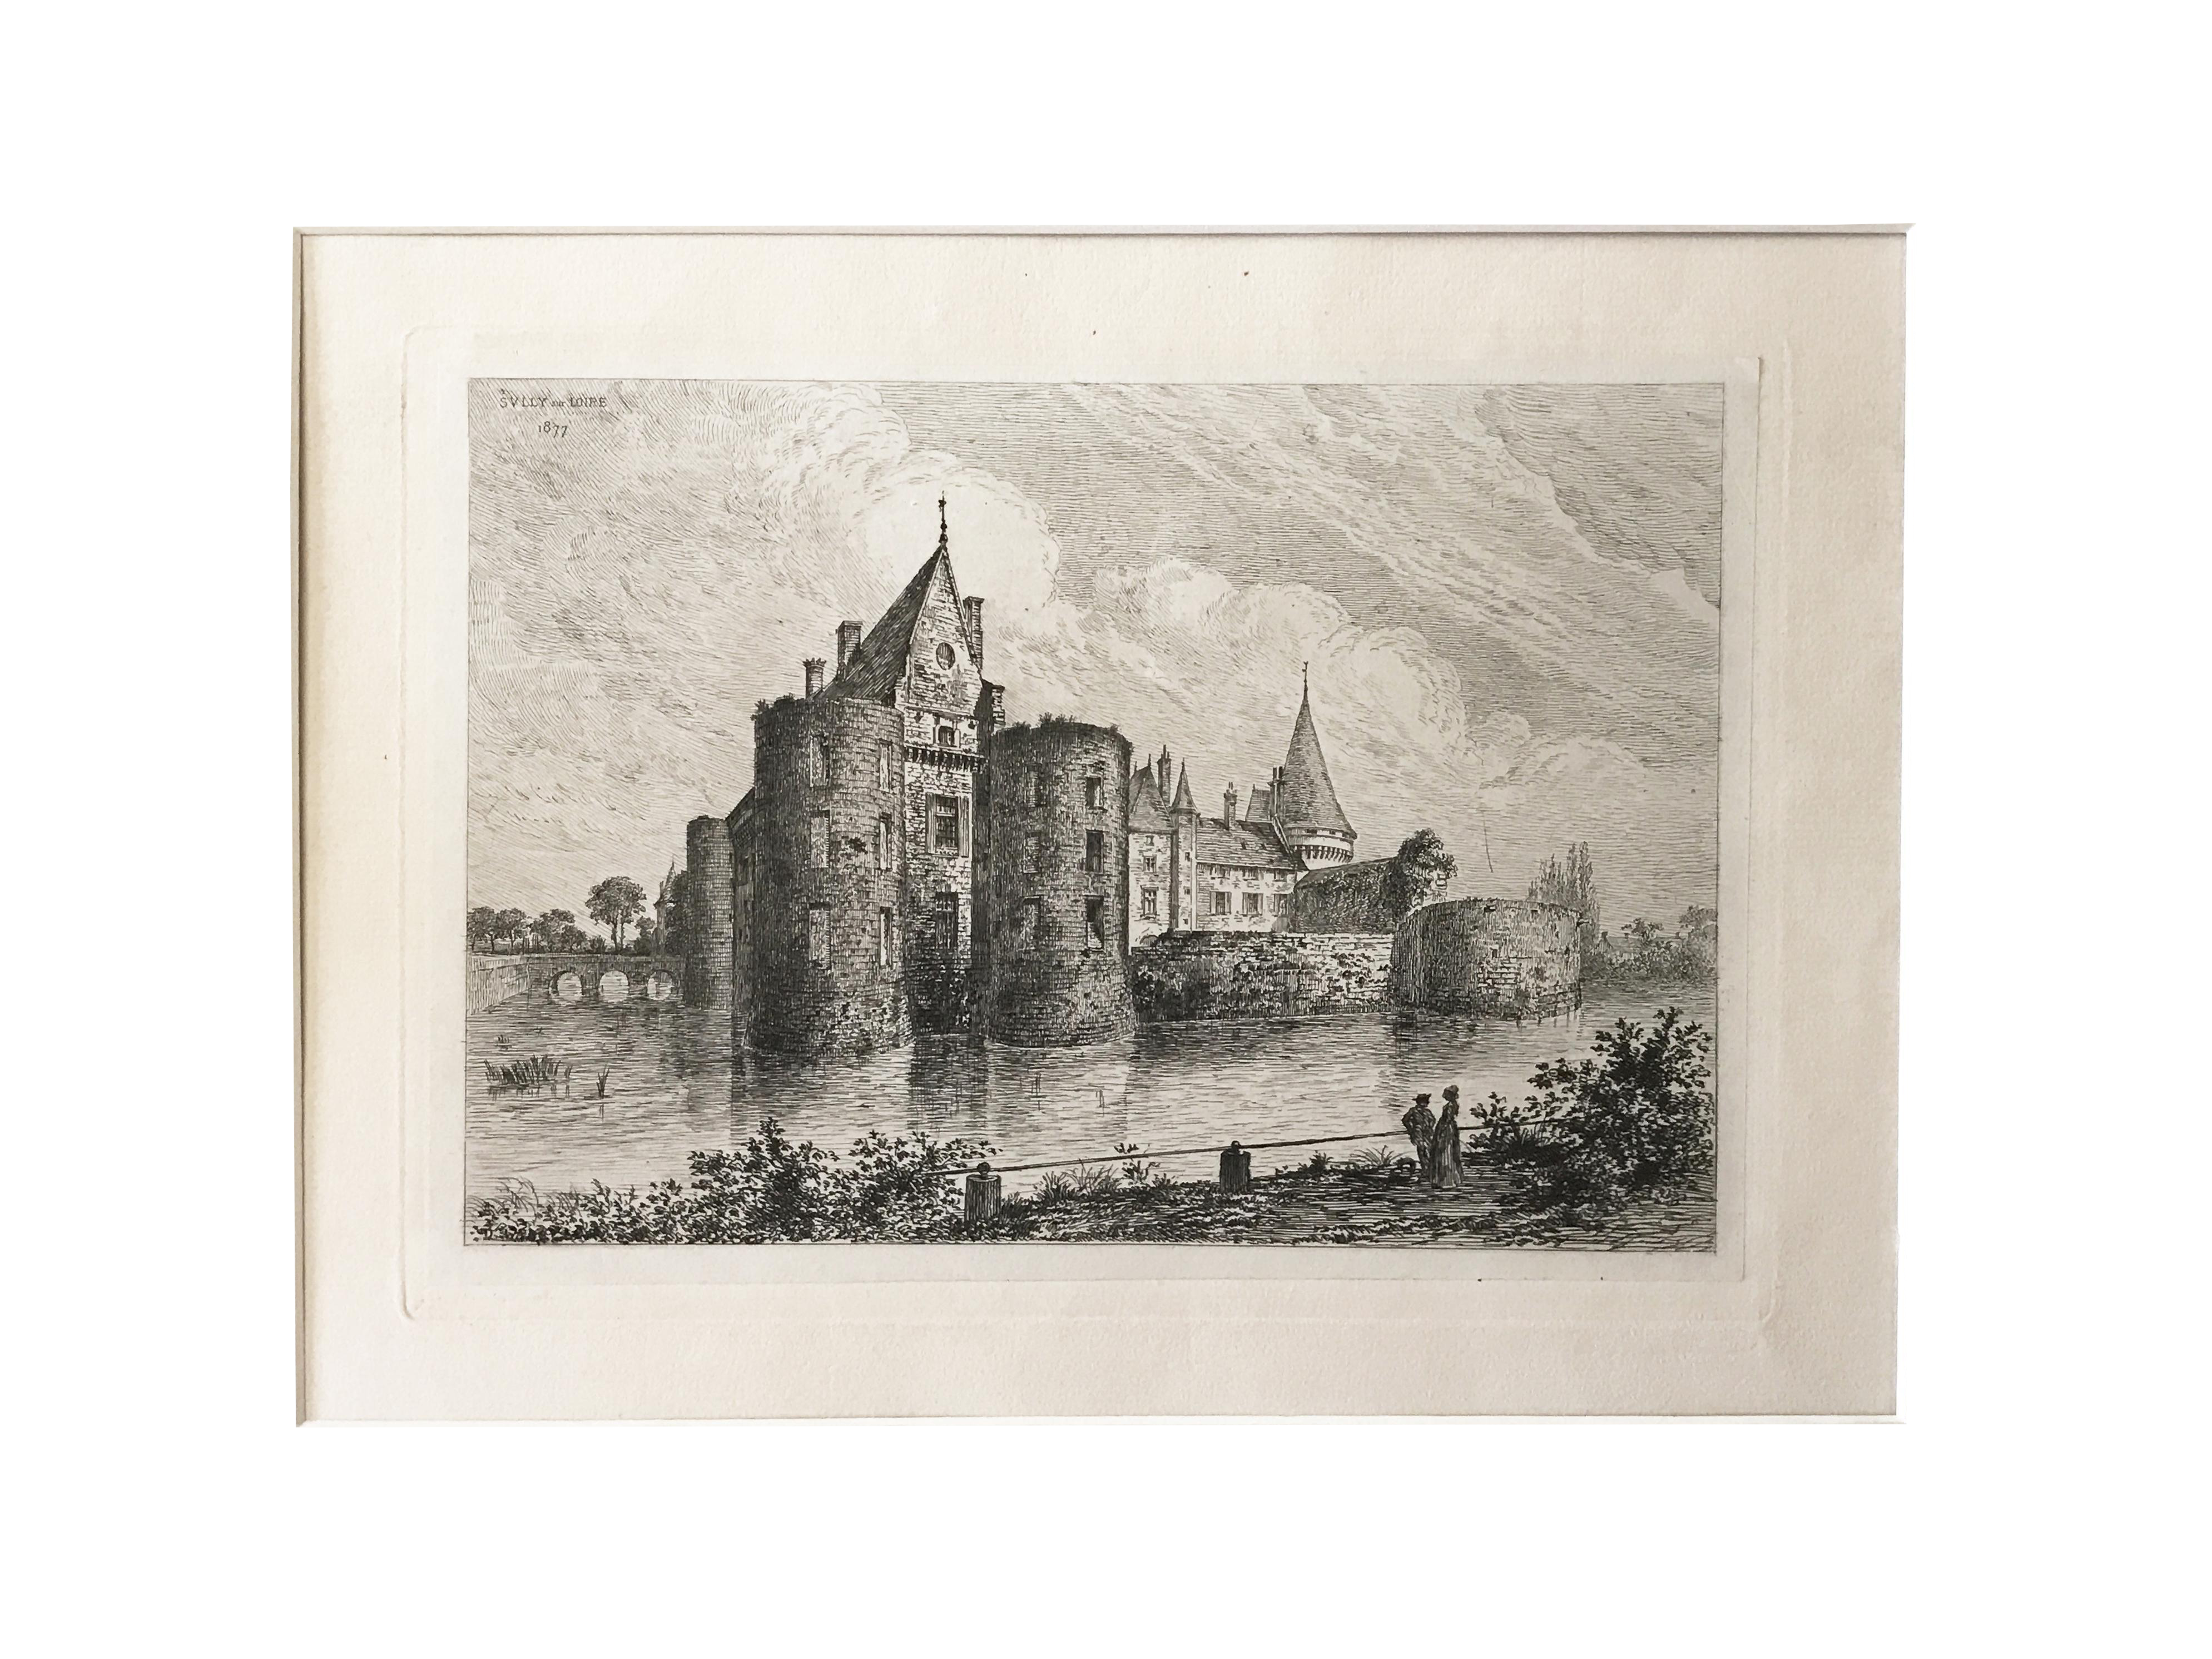 French chateau sully. Etching drawing pen and ink svg